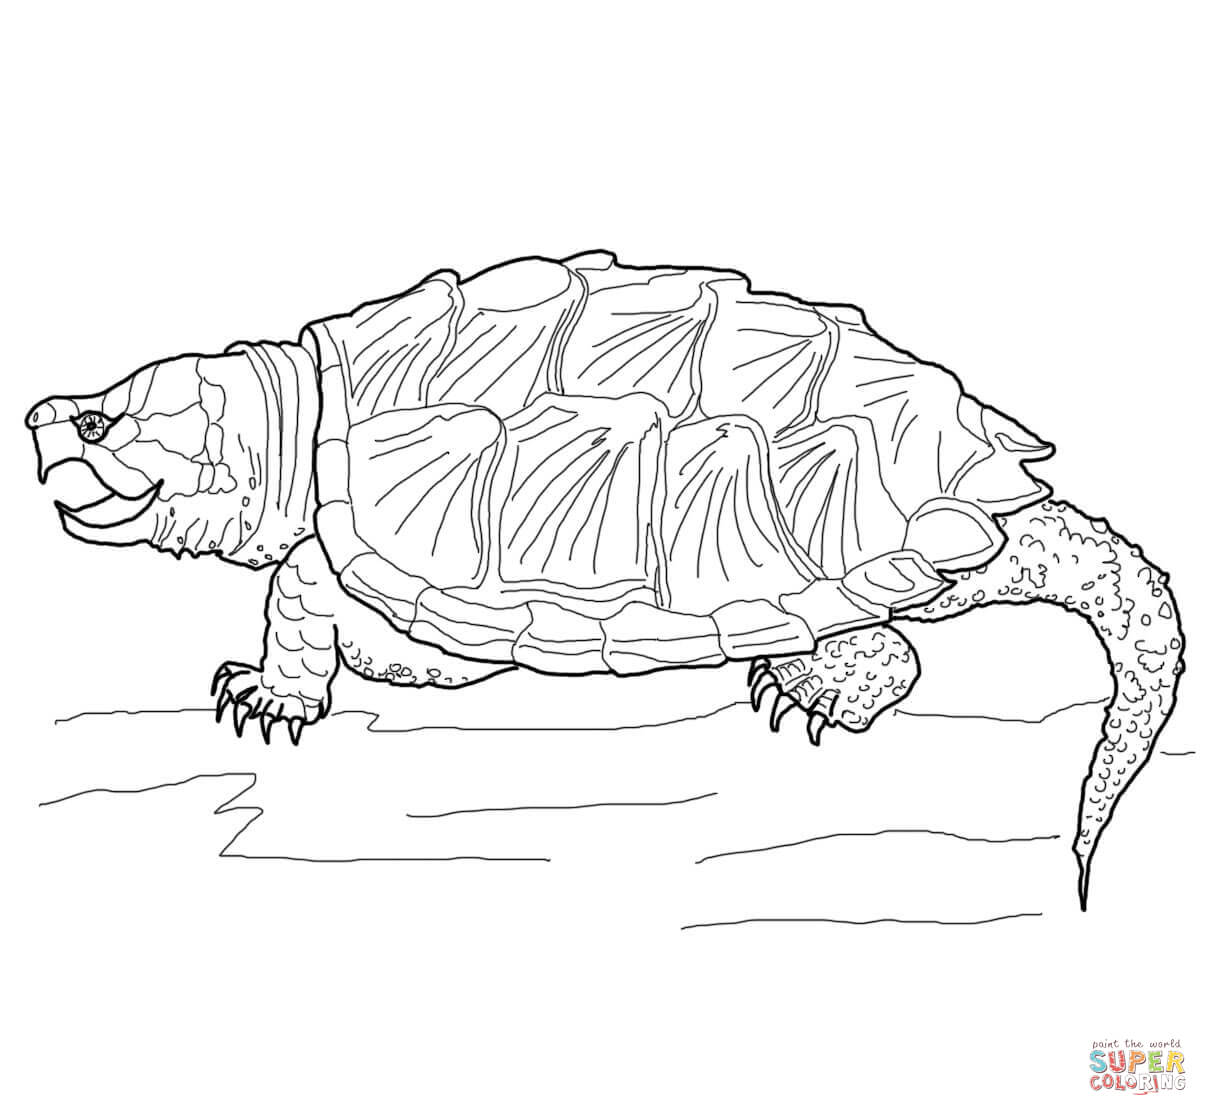 Printable Coloring Pages Slider Coloring Pages